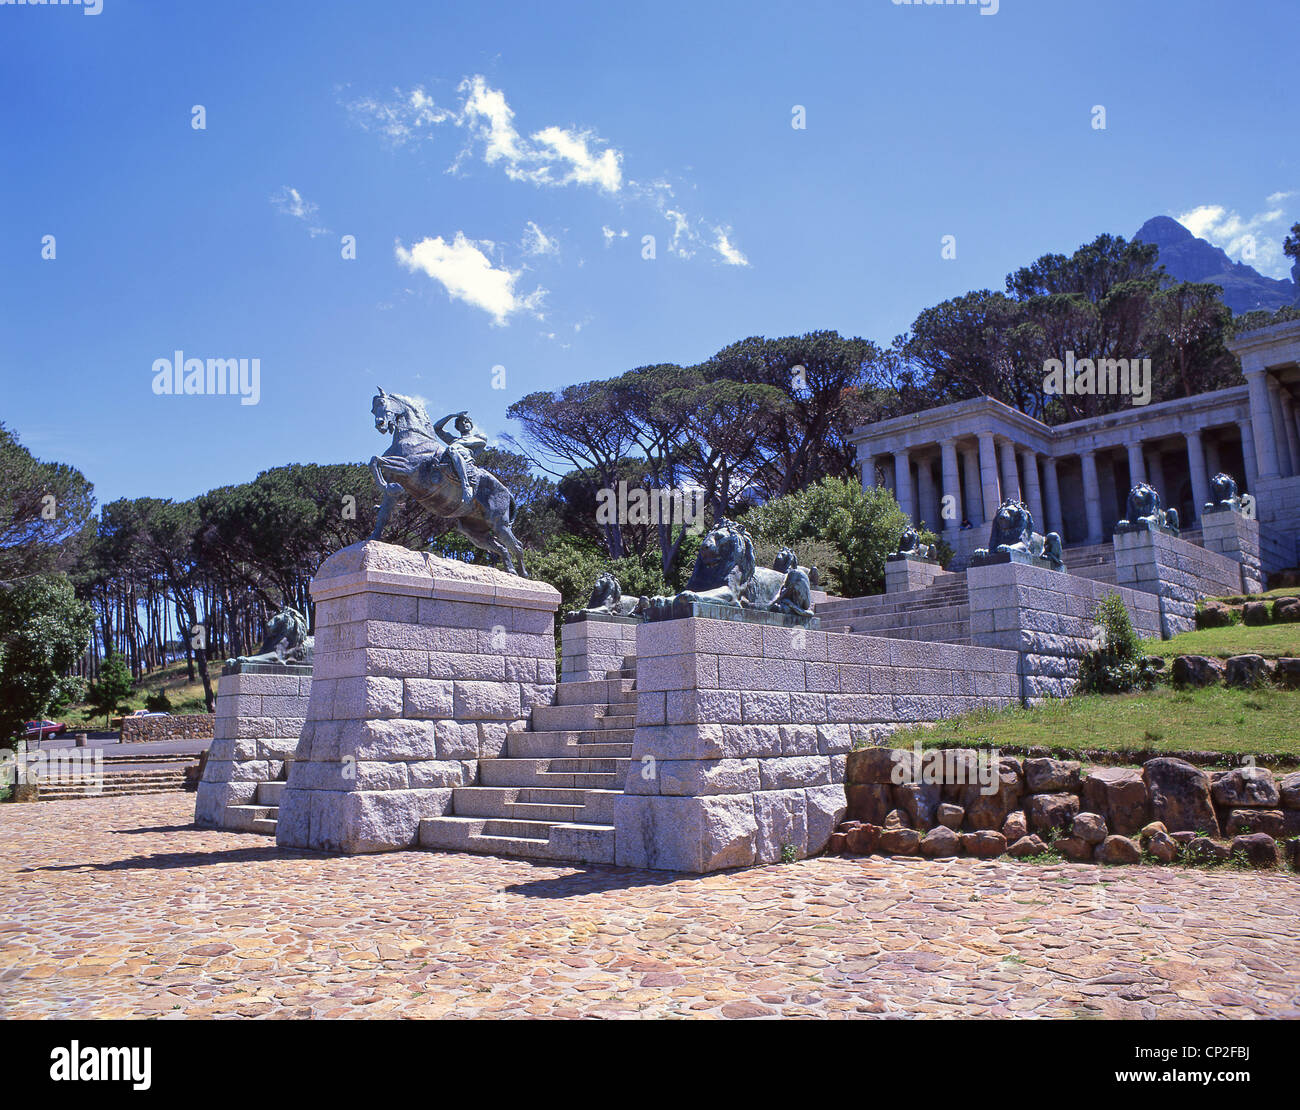 Cecil John Rhodes Memorial, Devil's Peak, Cape Town, Western Cape, Republic of South Africa - Stock Image